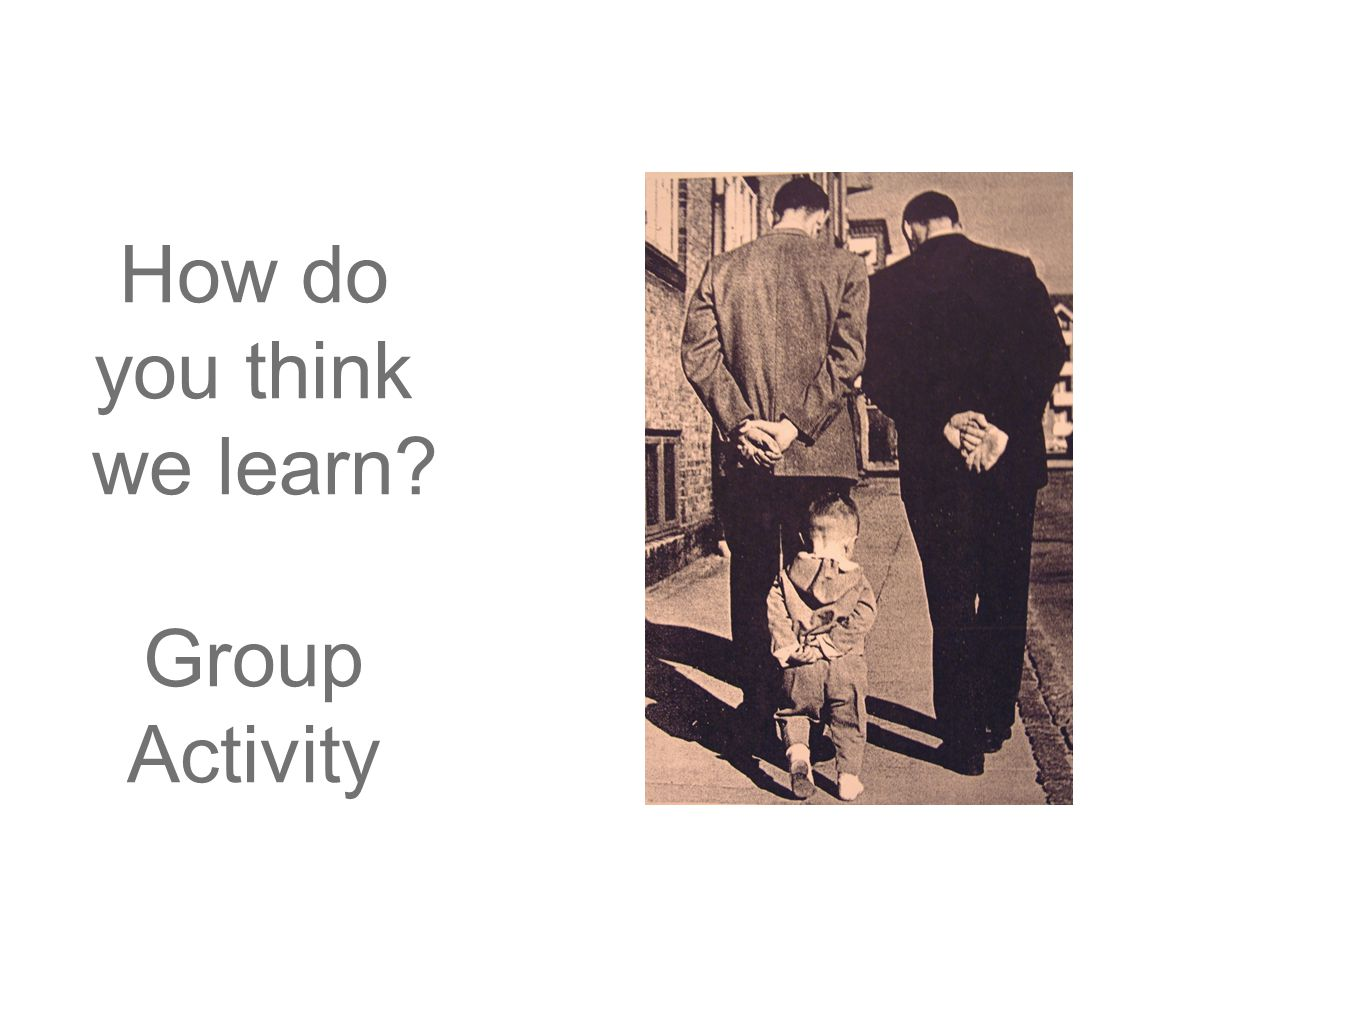 How do you think we learn? Group Activity